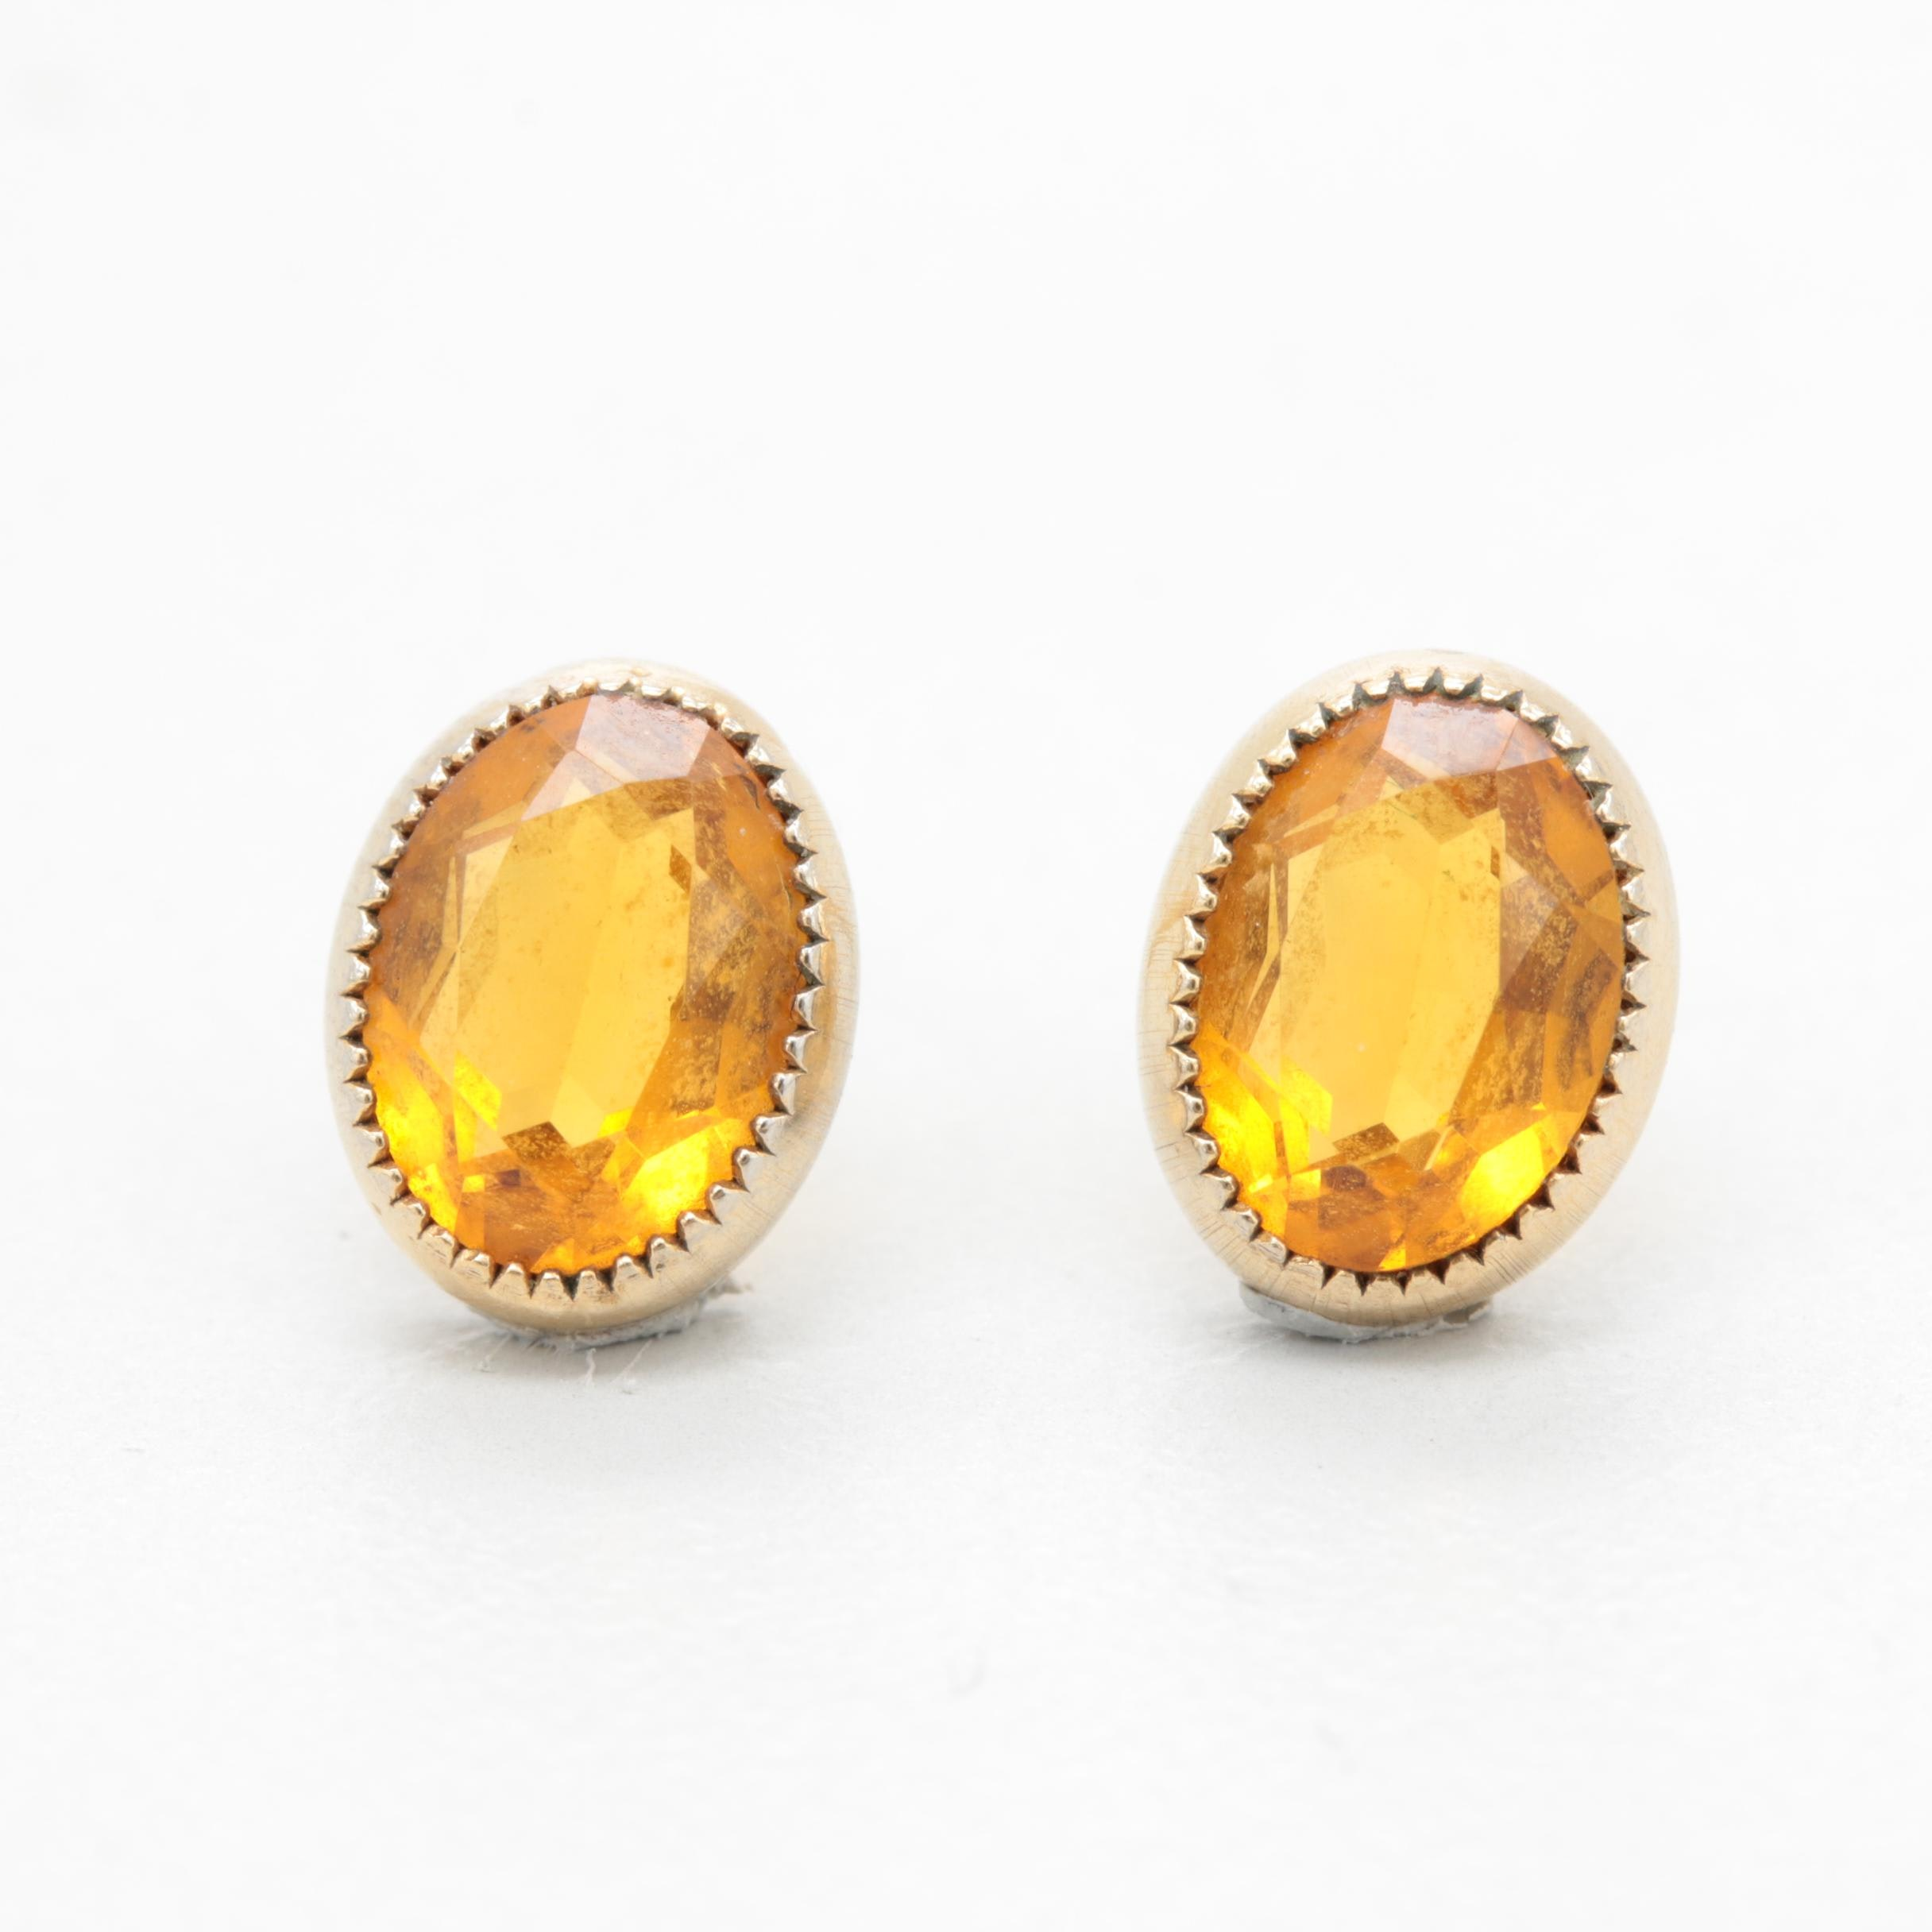 10K and 14K Yellow Gold Citrine Earrings